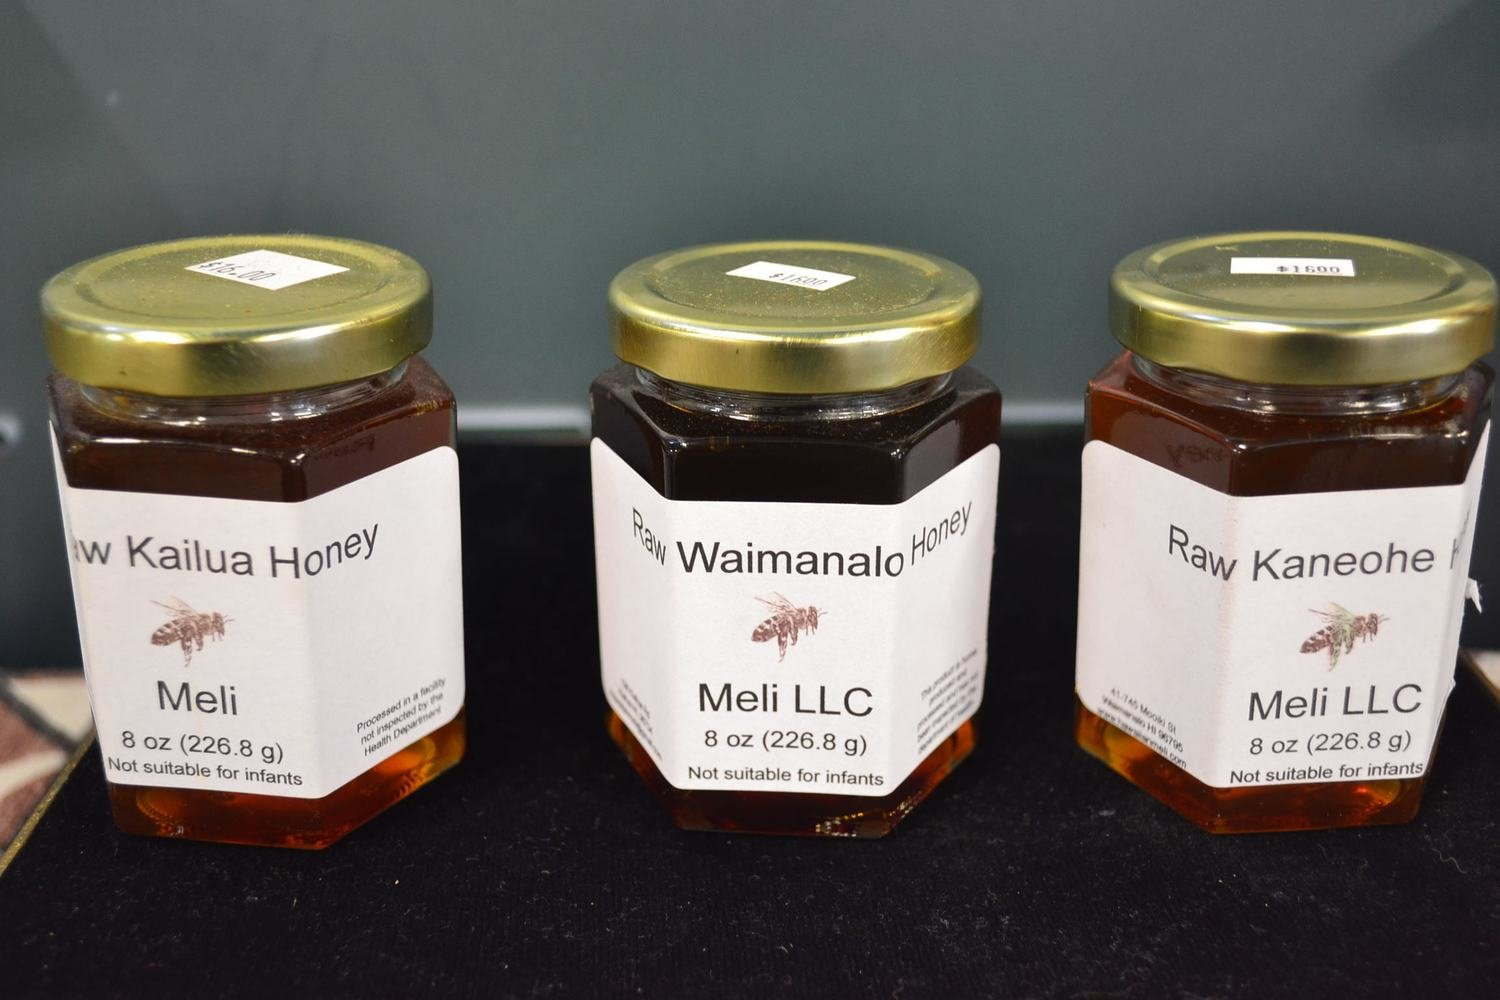 Honey - Waimanalo 8oz $16 (Meli)